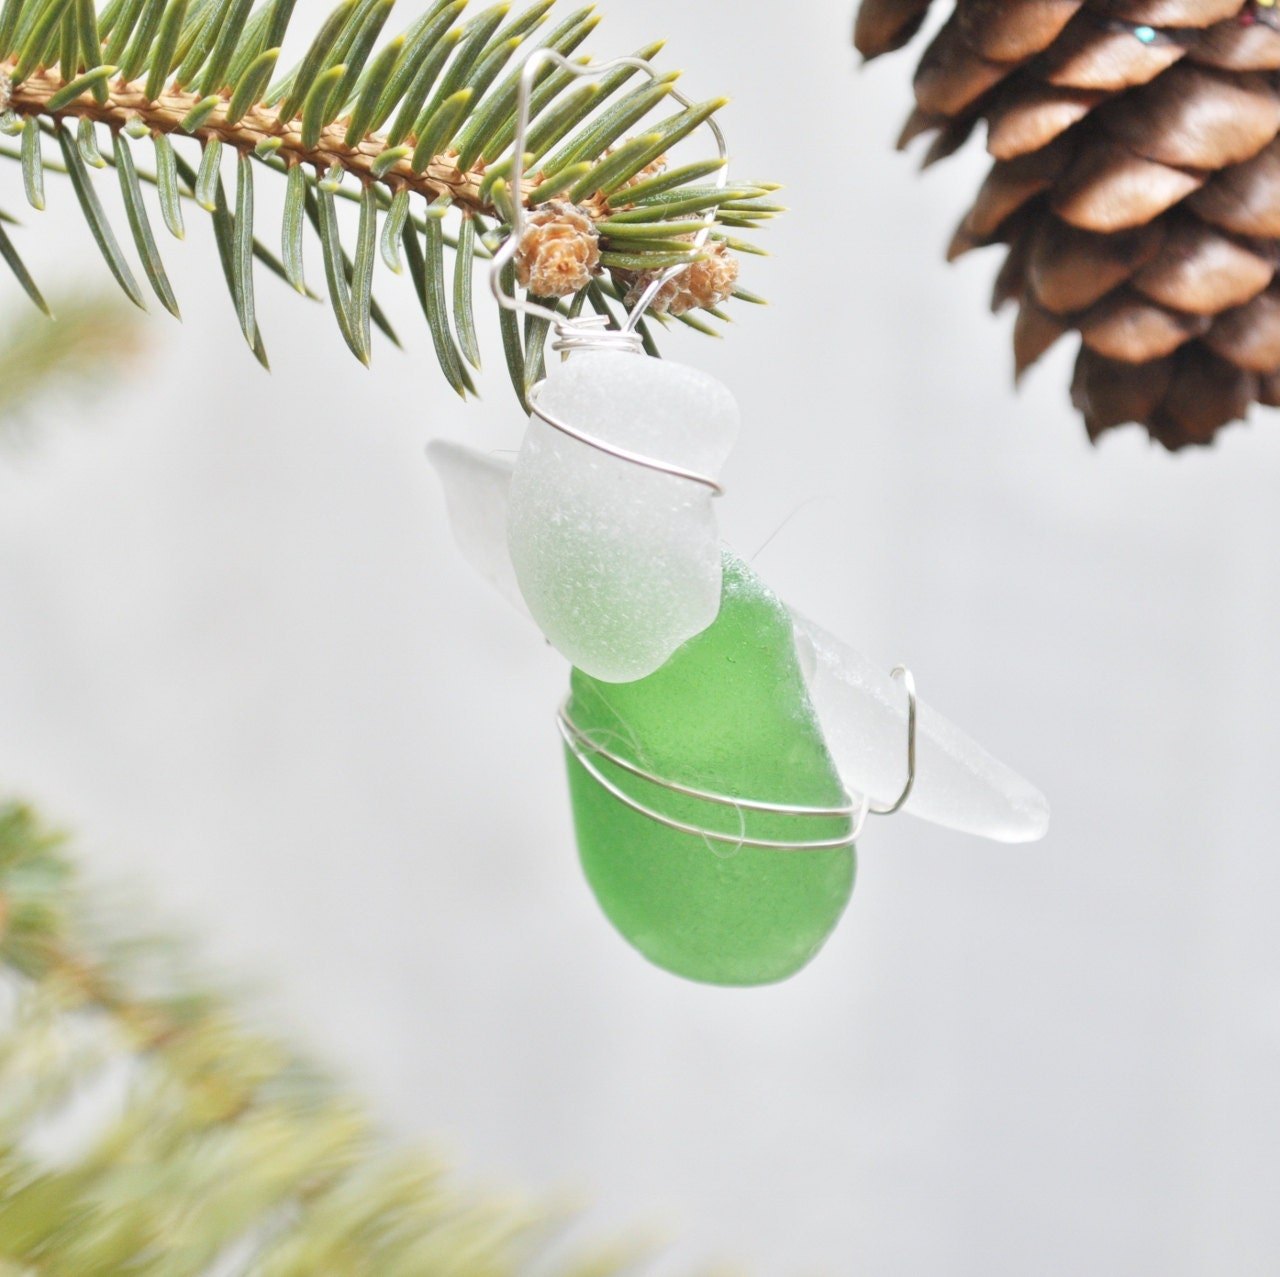 Seaglass Angel Christmas Ornament or Sun-catcher made with Green and White Seaglass - ShatteredSmooth